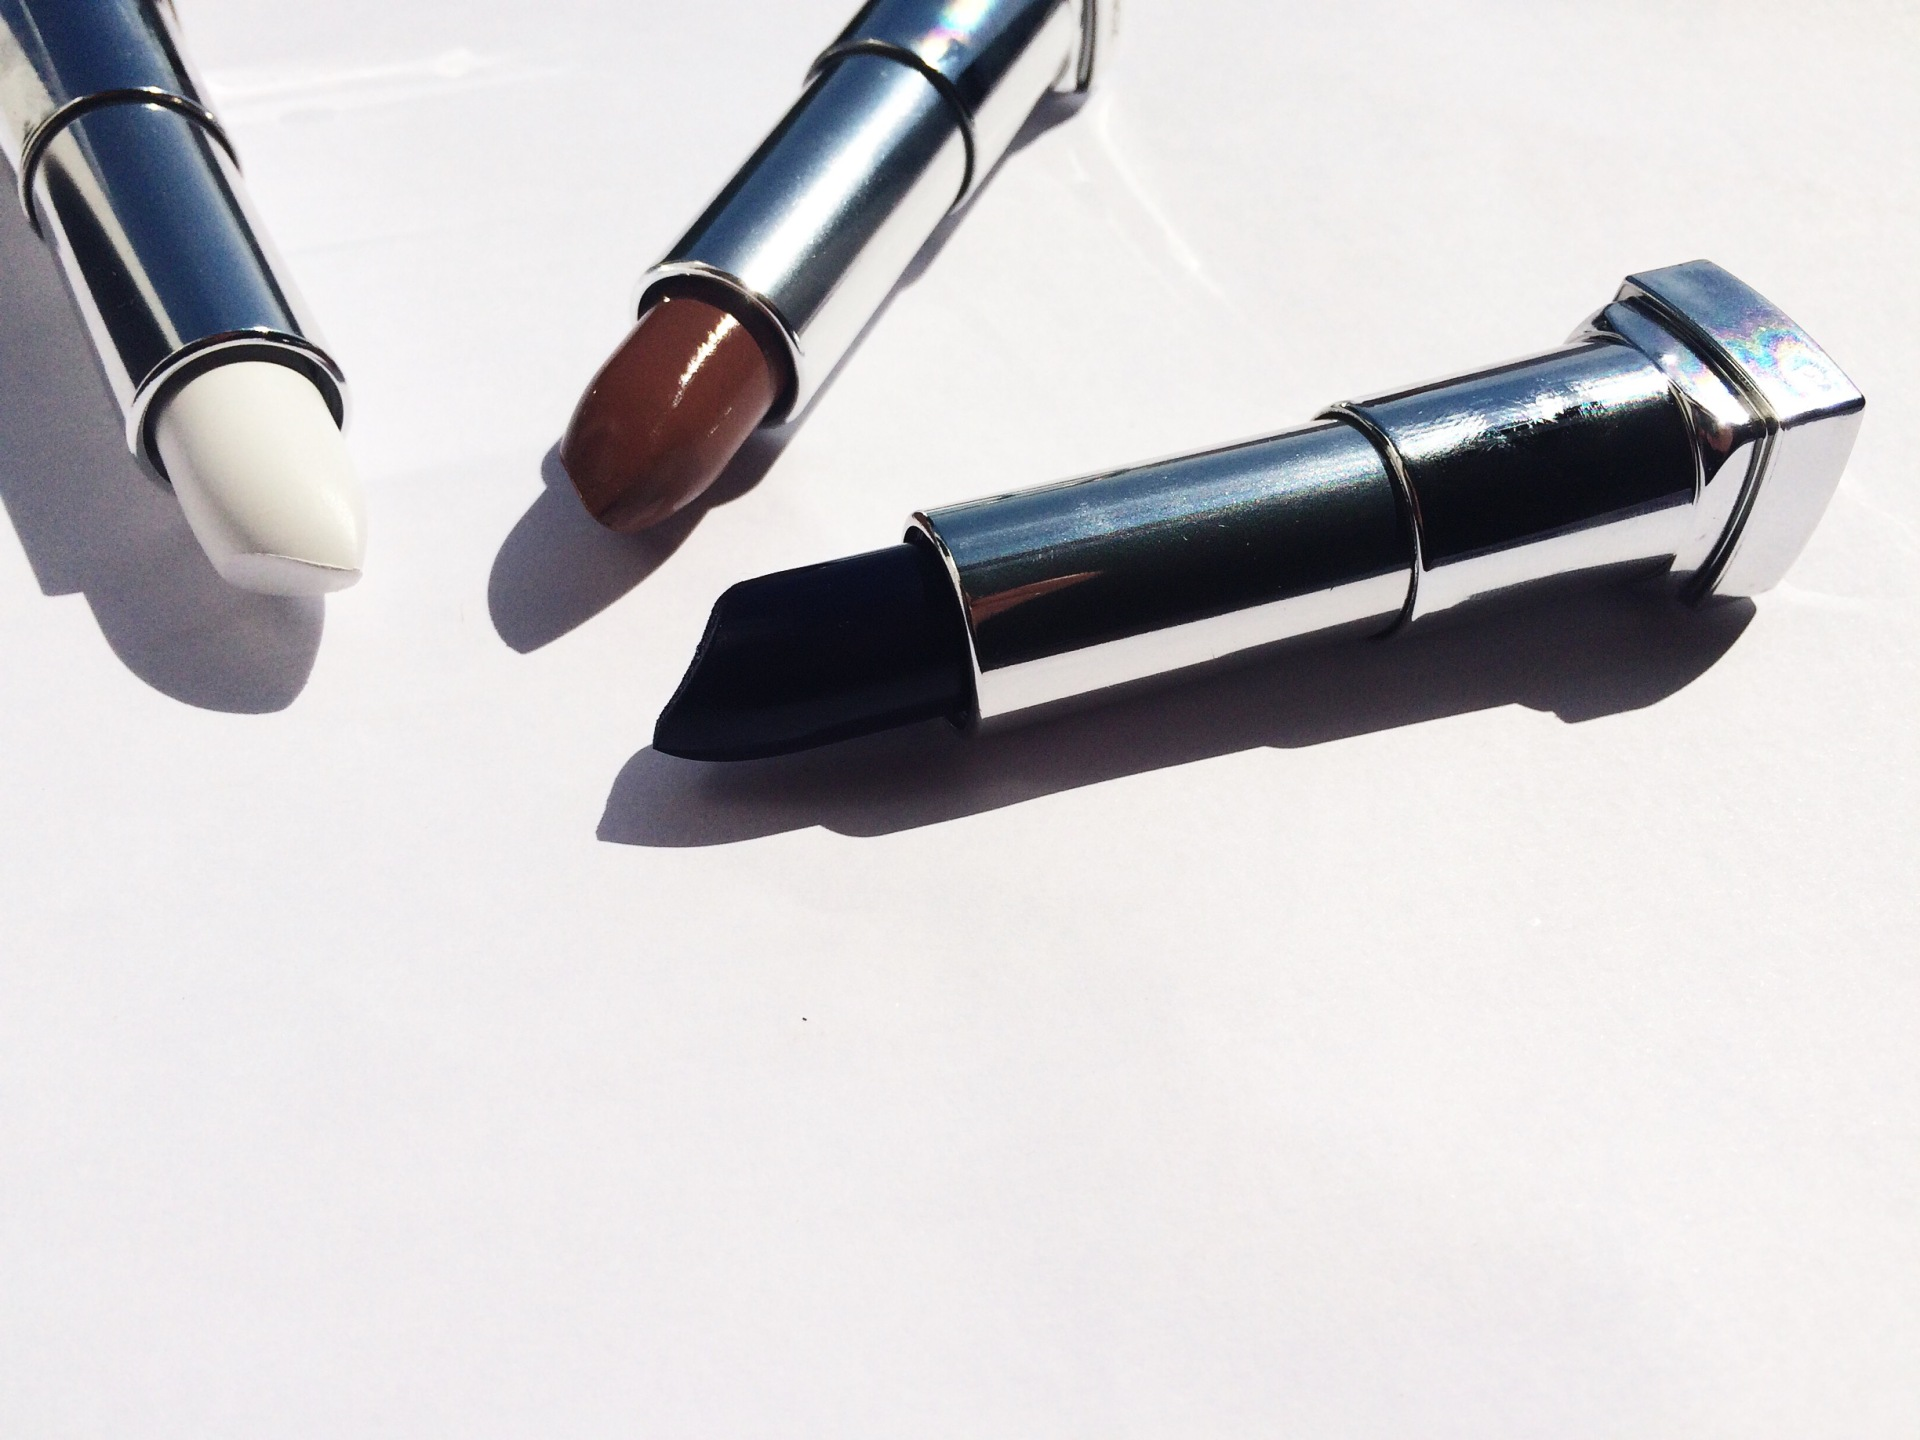 maybelline-wicked-white-gone-girege-midnight-blue-lipstick-budget-drugstore-uk-blog-review